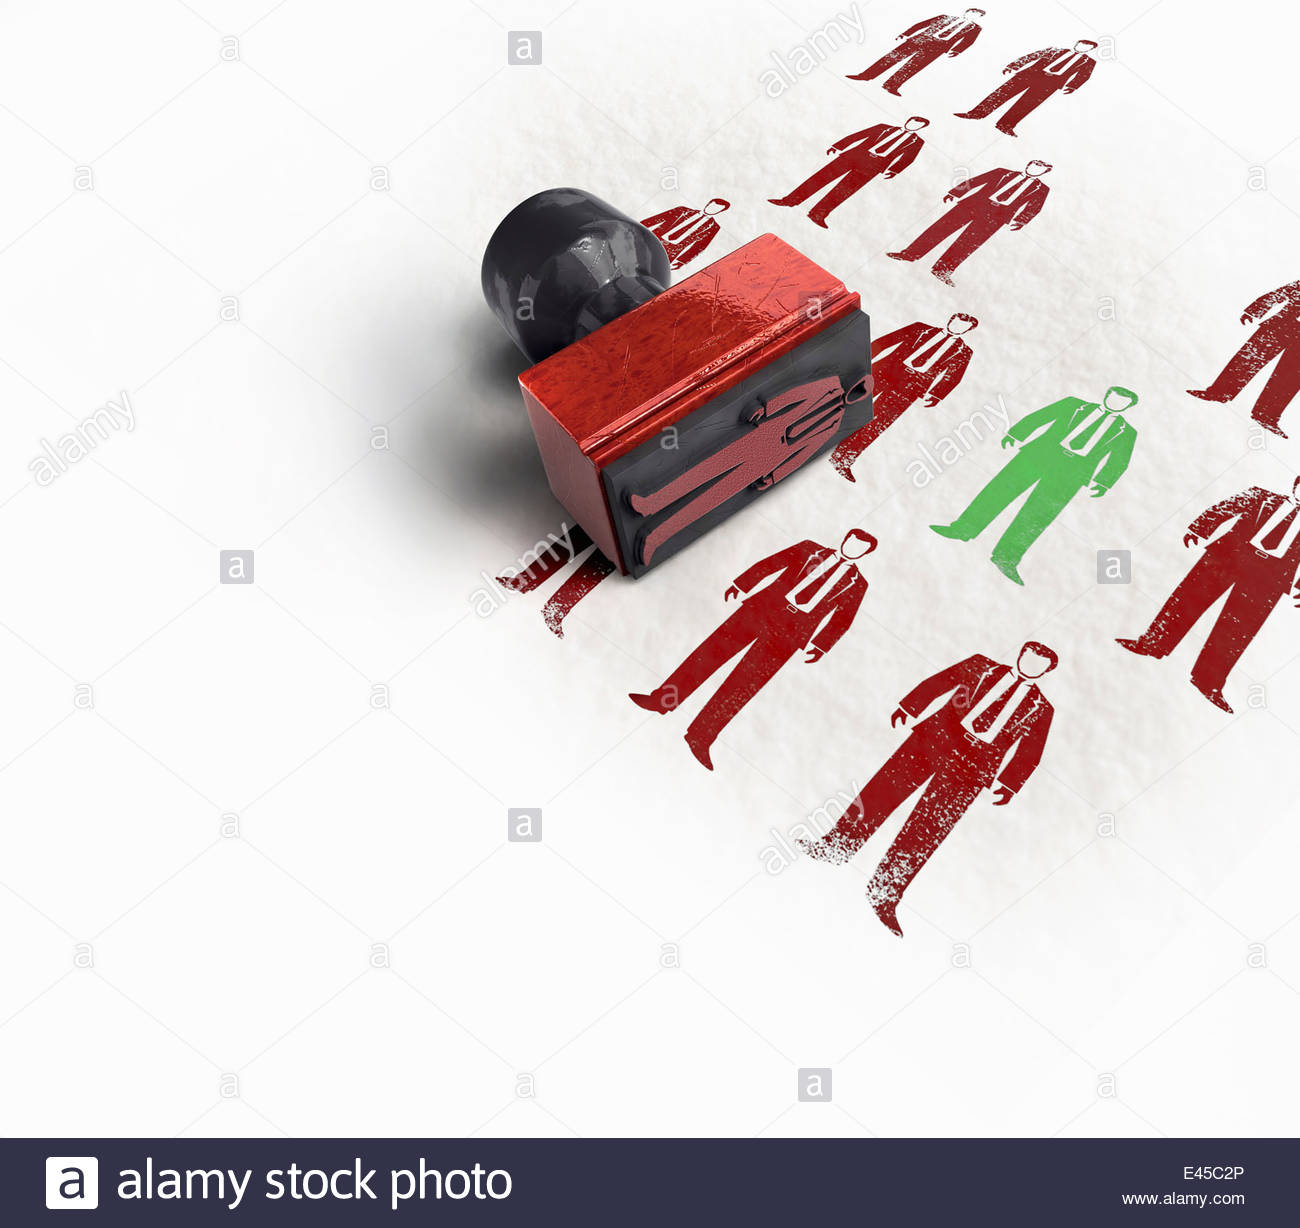 Green rubber stamp businessman standing out from the crowd - Stock Image